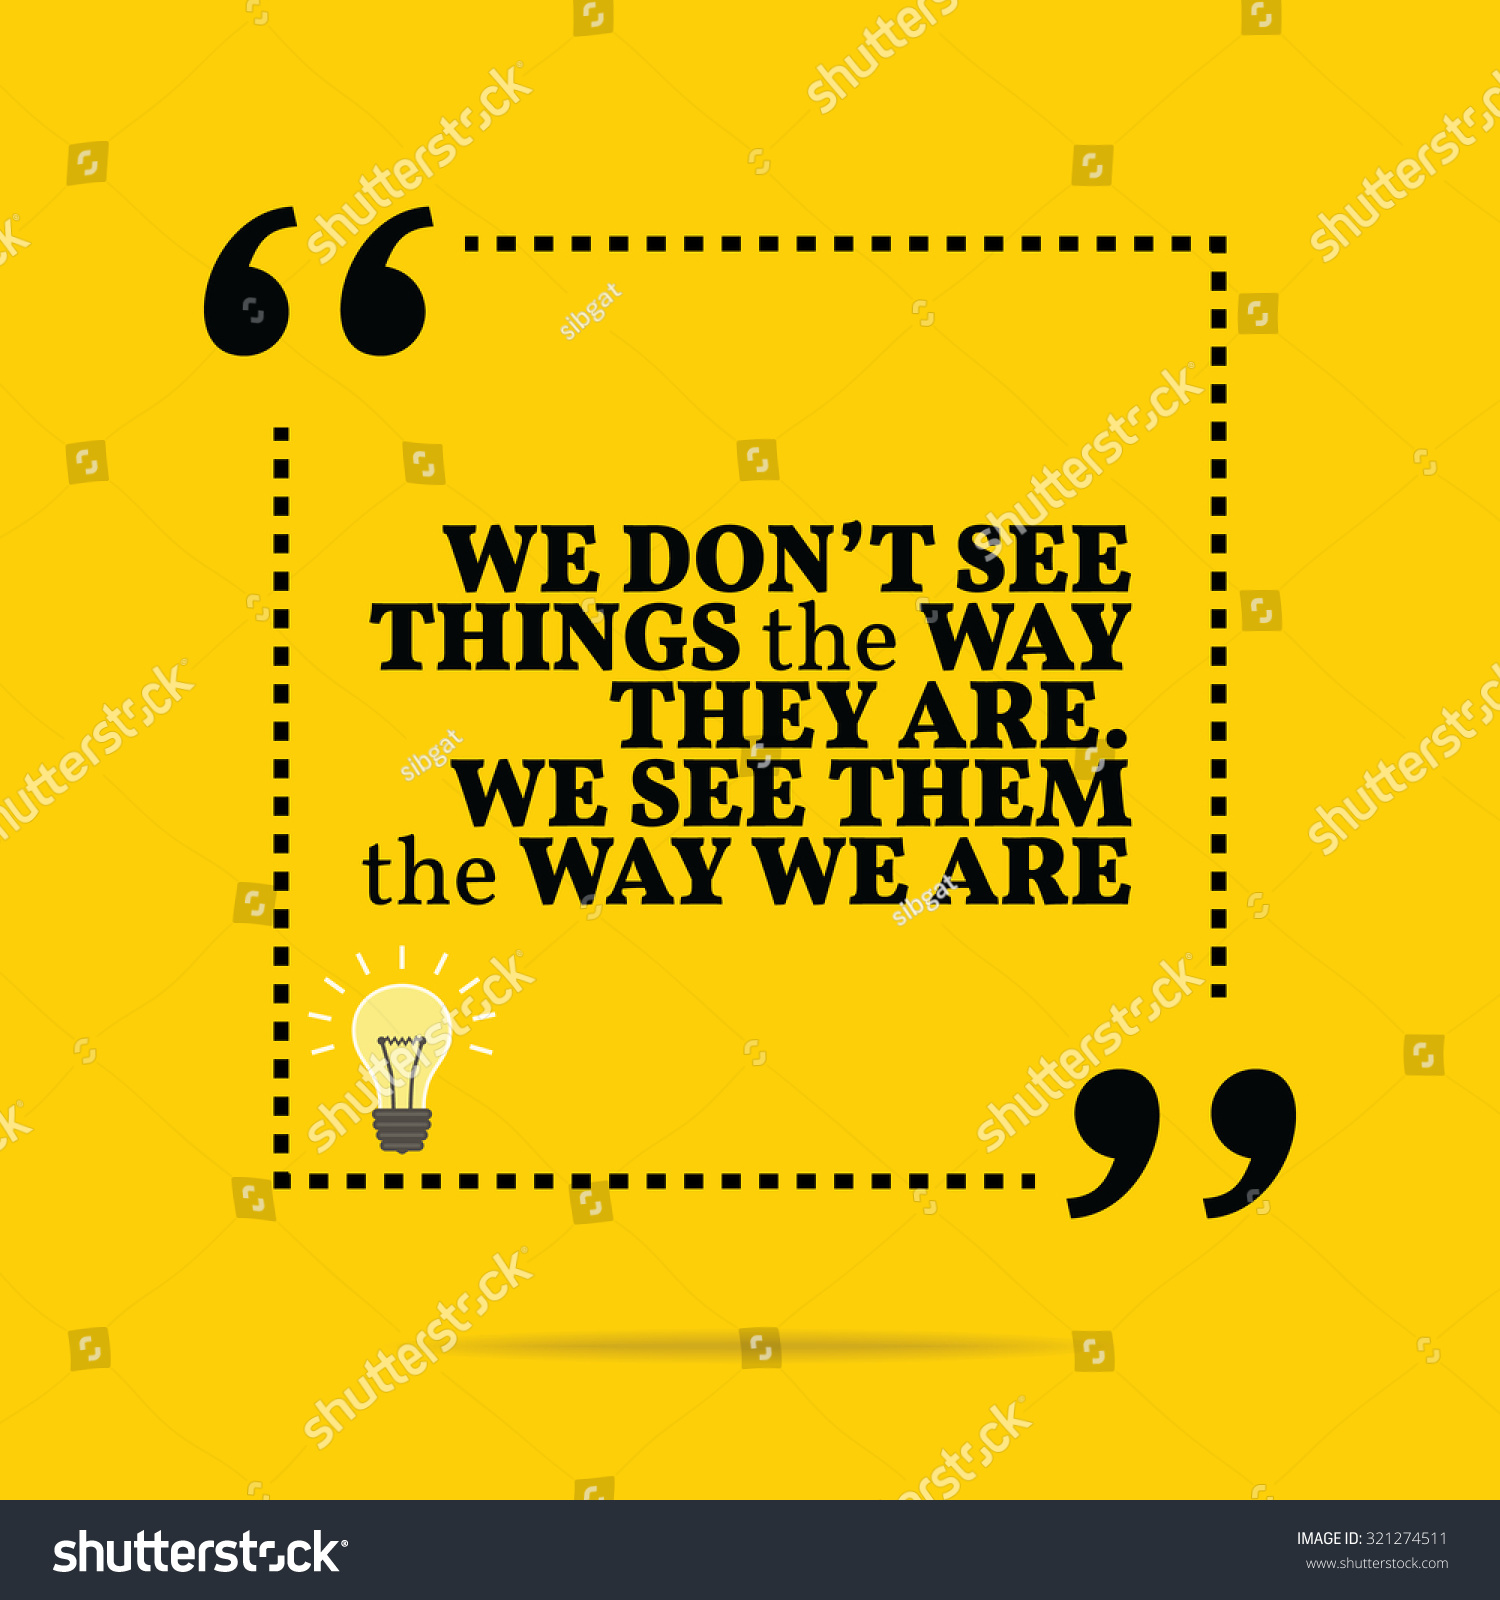 Stock Quote For T: Inspirational Motivational Quote We Dont See Stock Vector